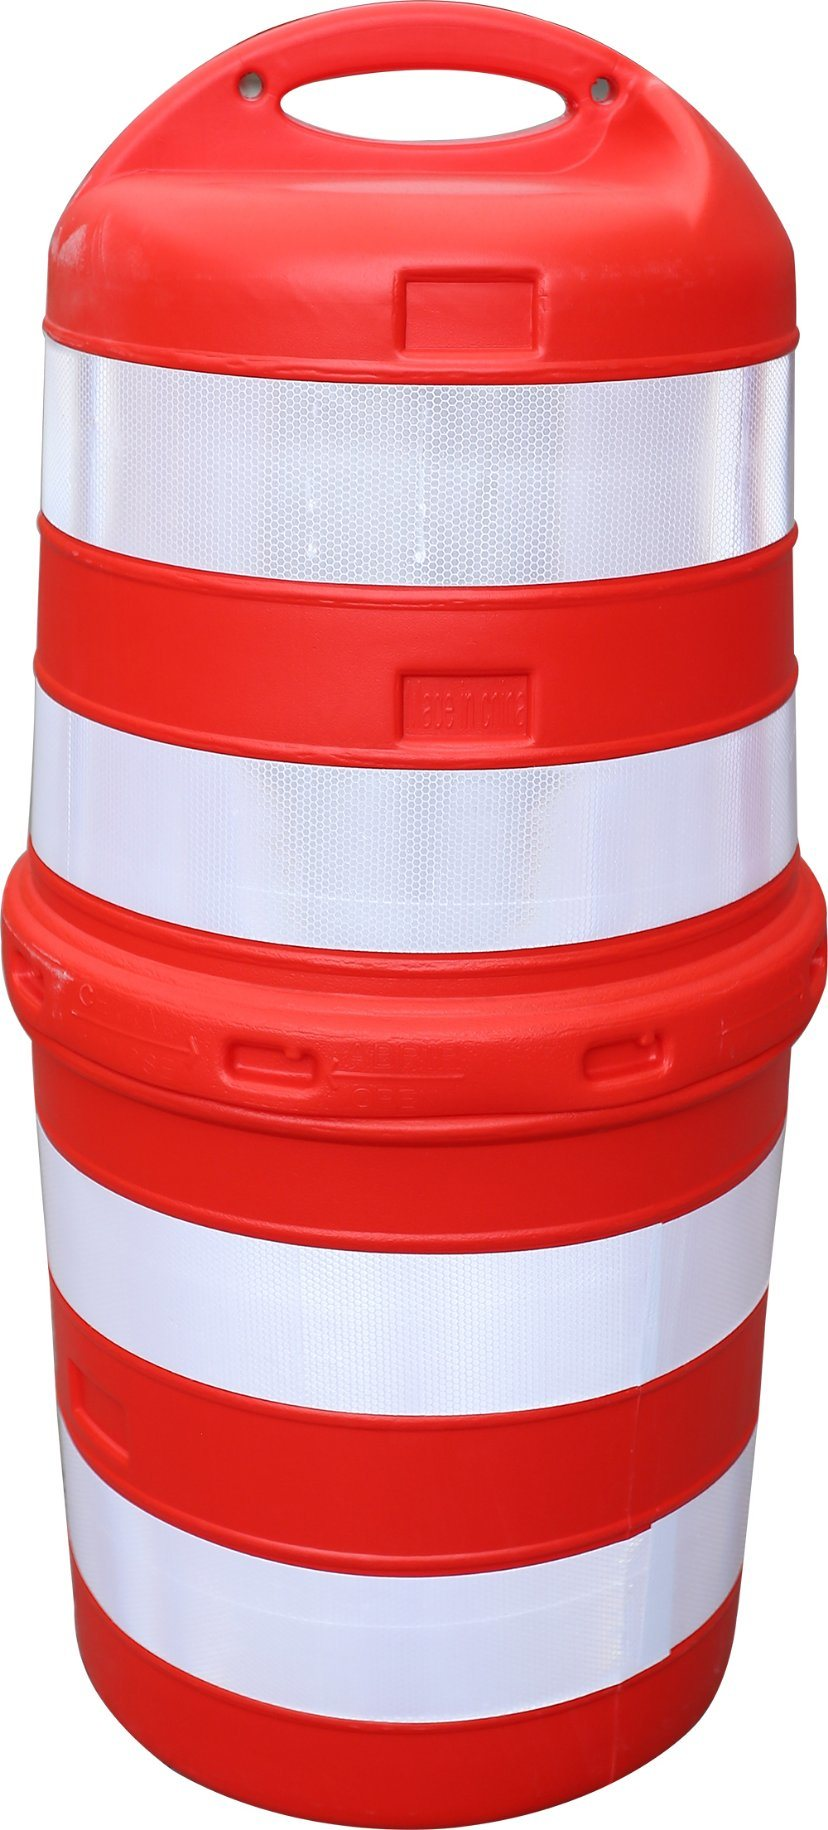 Stackable Rugged Durable LDPE 1000mm Plastic Traffic Drum